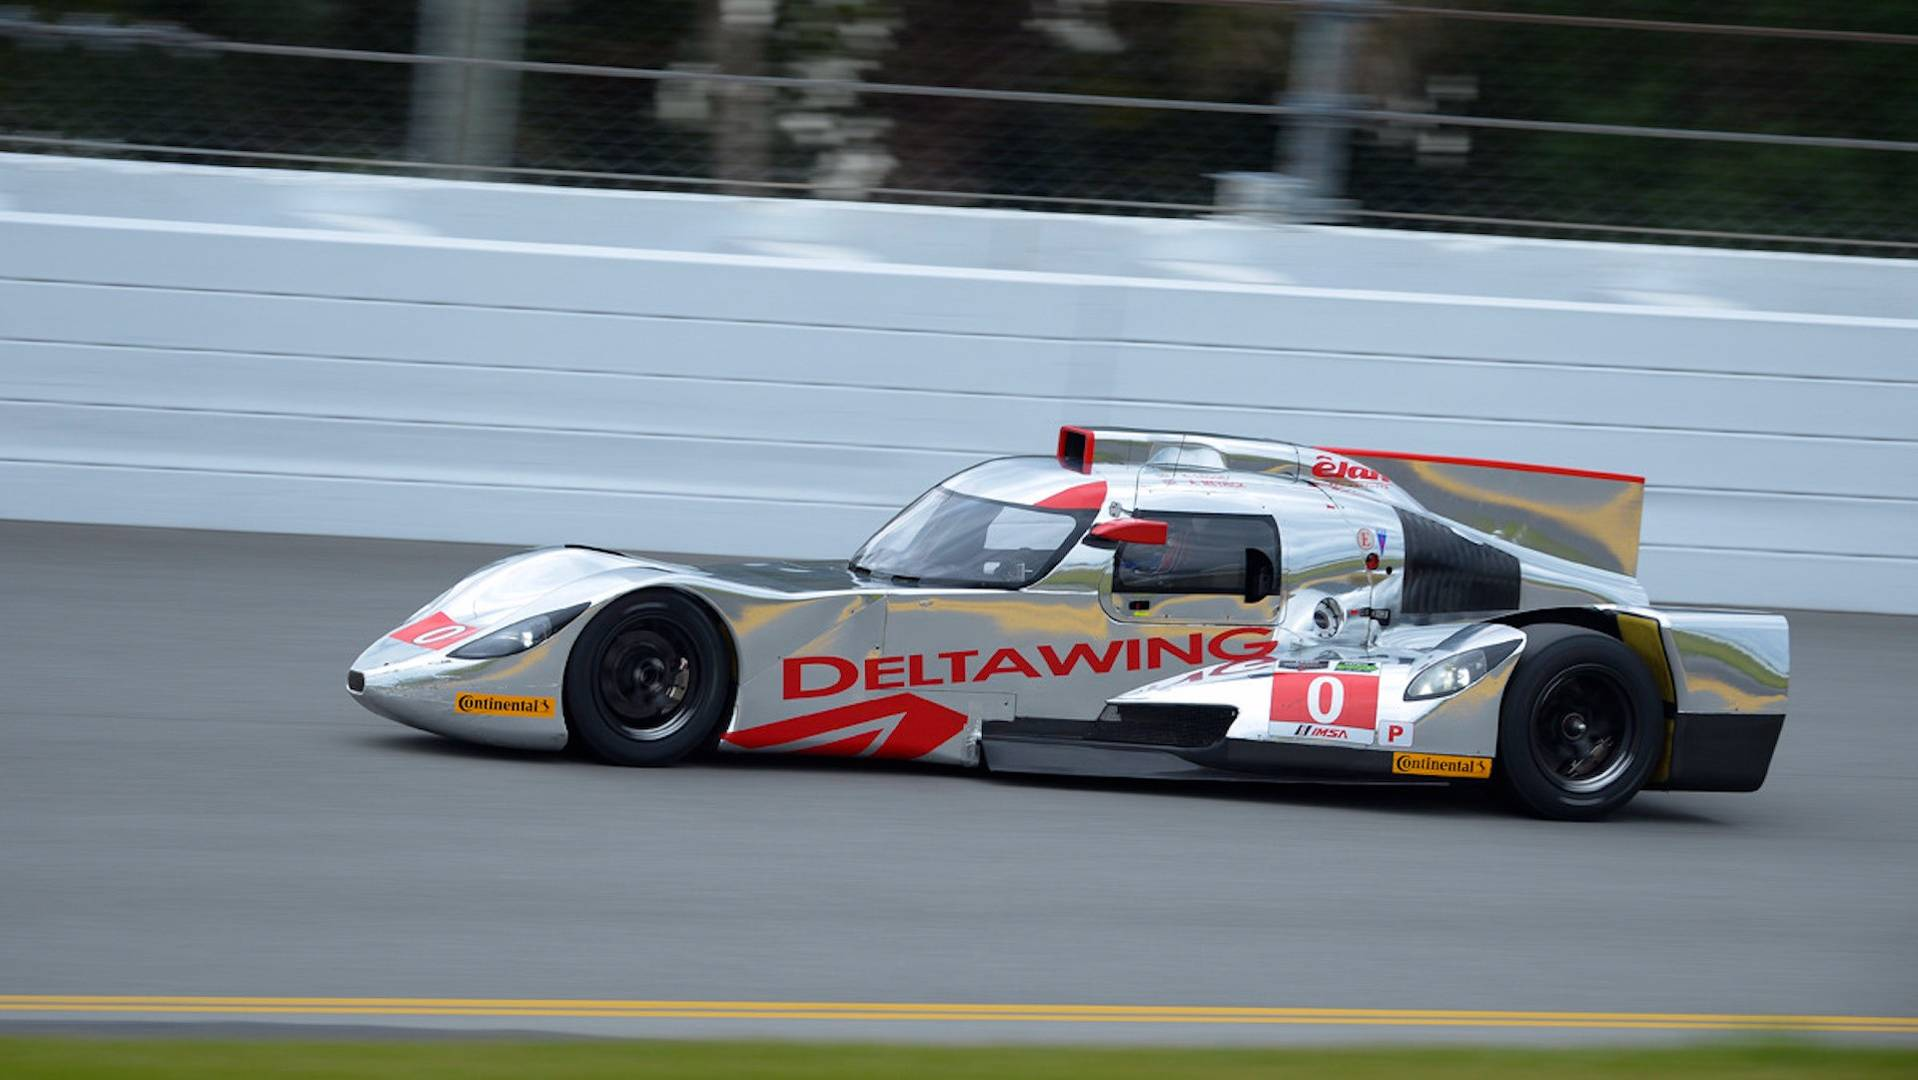 DeltaWing 2013 for sale (2)